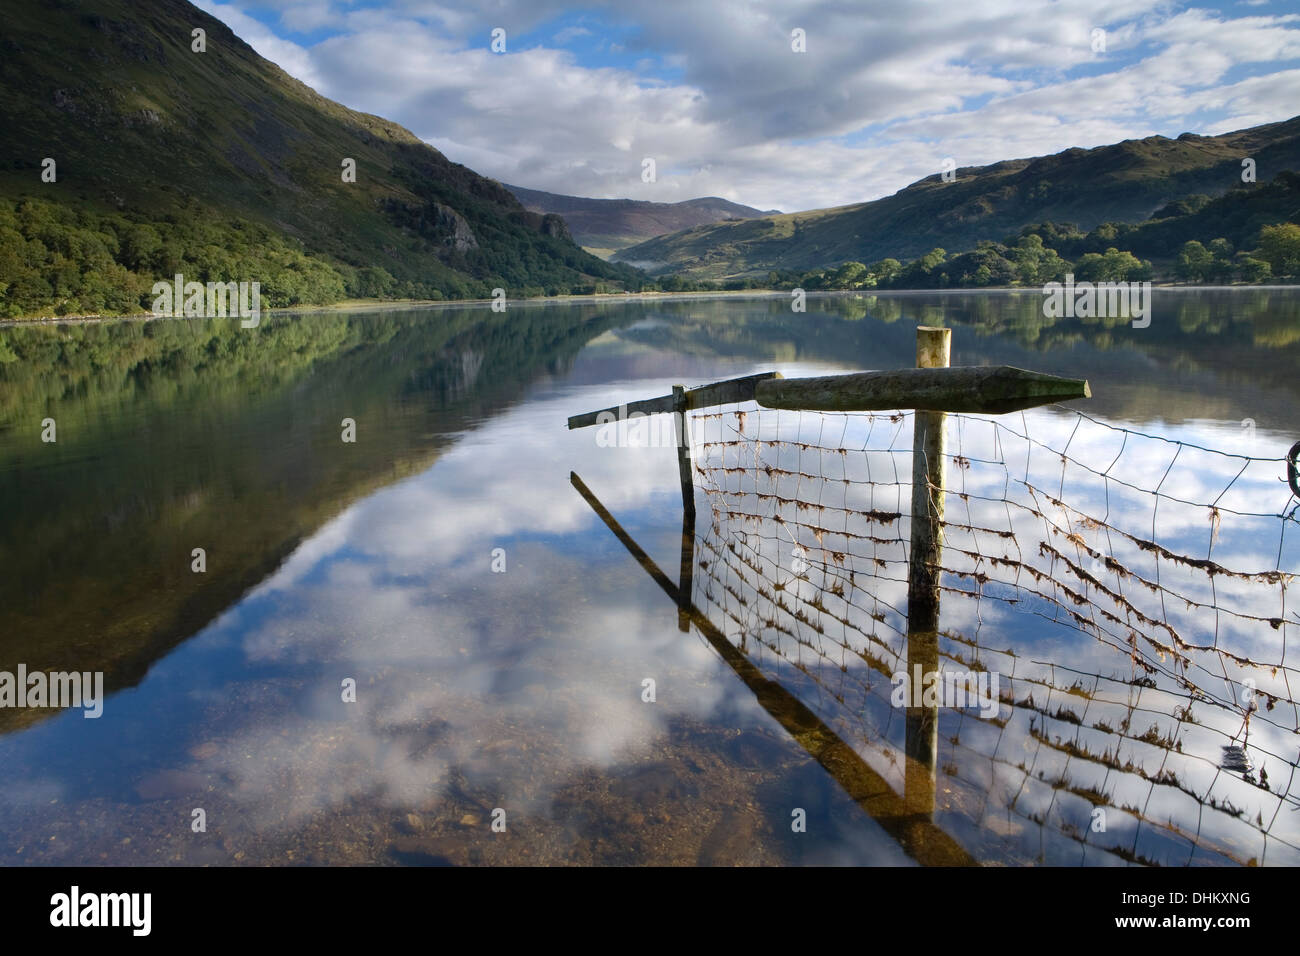 A fence and reflection going into Llyn Gwynant. The mist rising over the lake partially obscures Gallt y Wenallt, Stock Photo